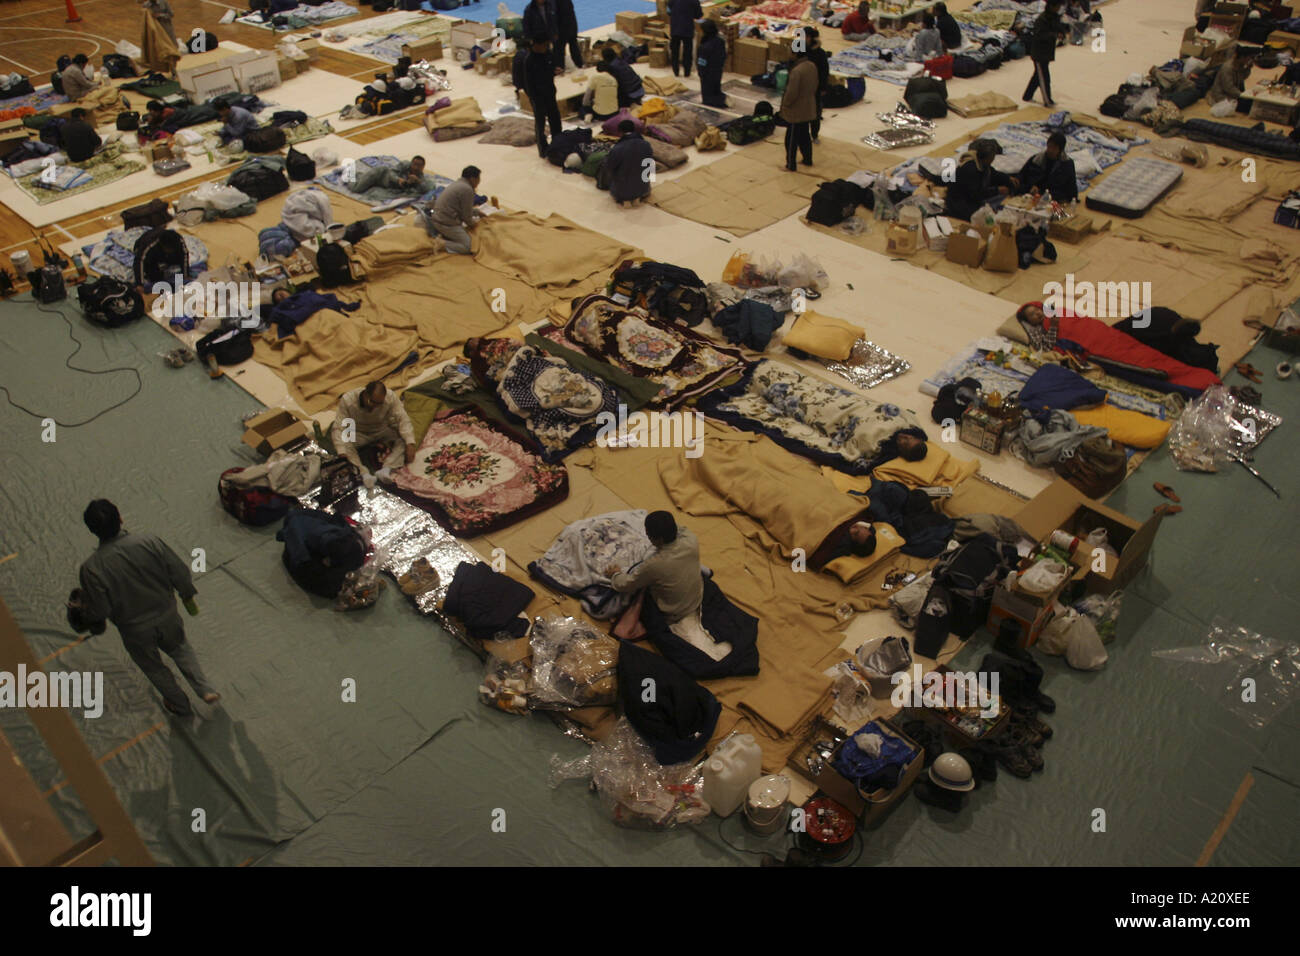 Aftermath of powerful earthquakes which hit Northern Japan, October 2004. - Stock Image